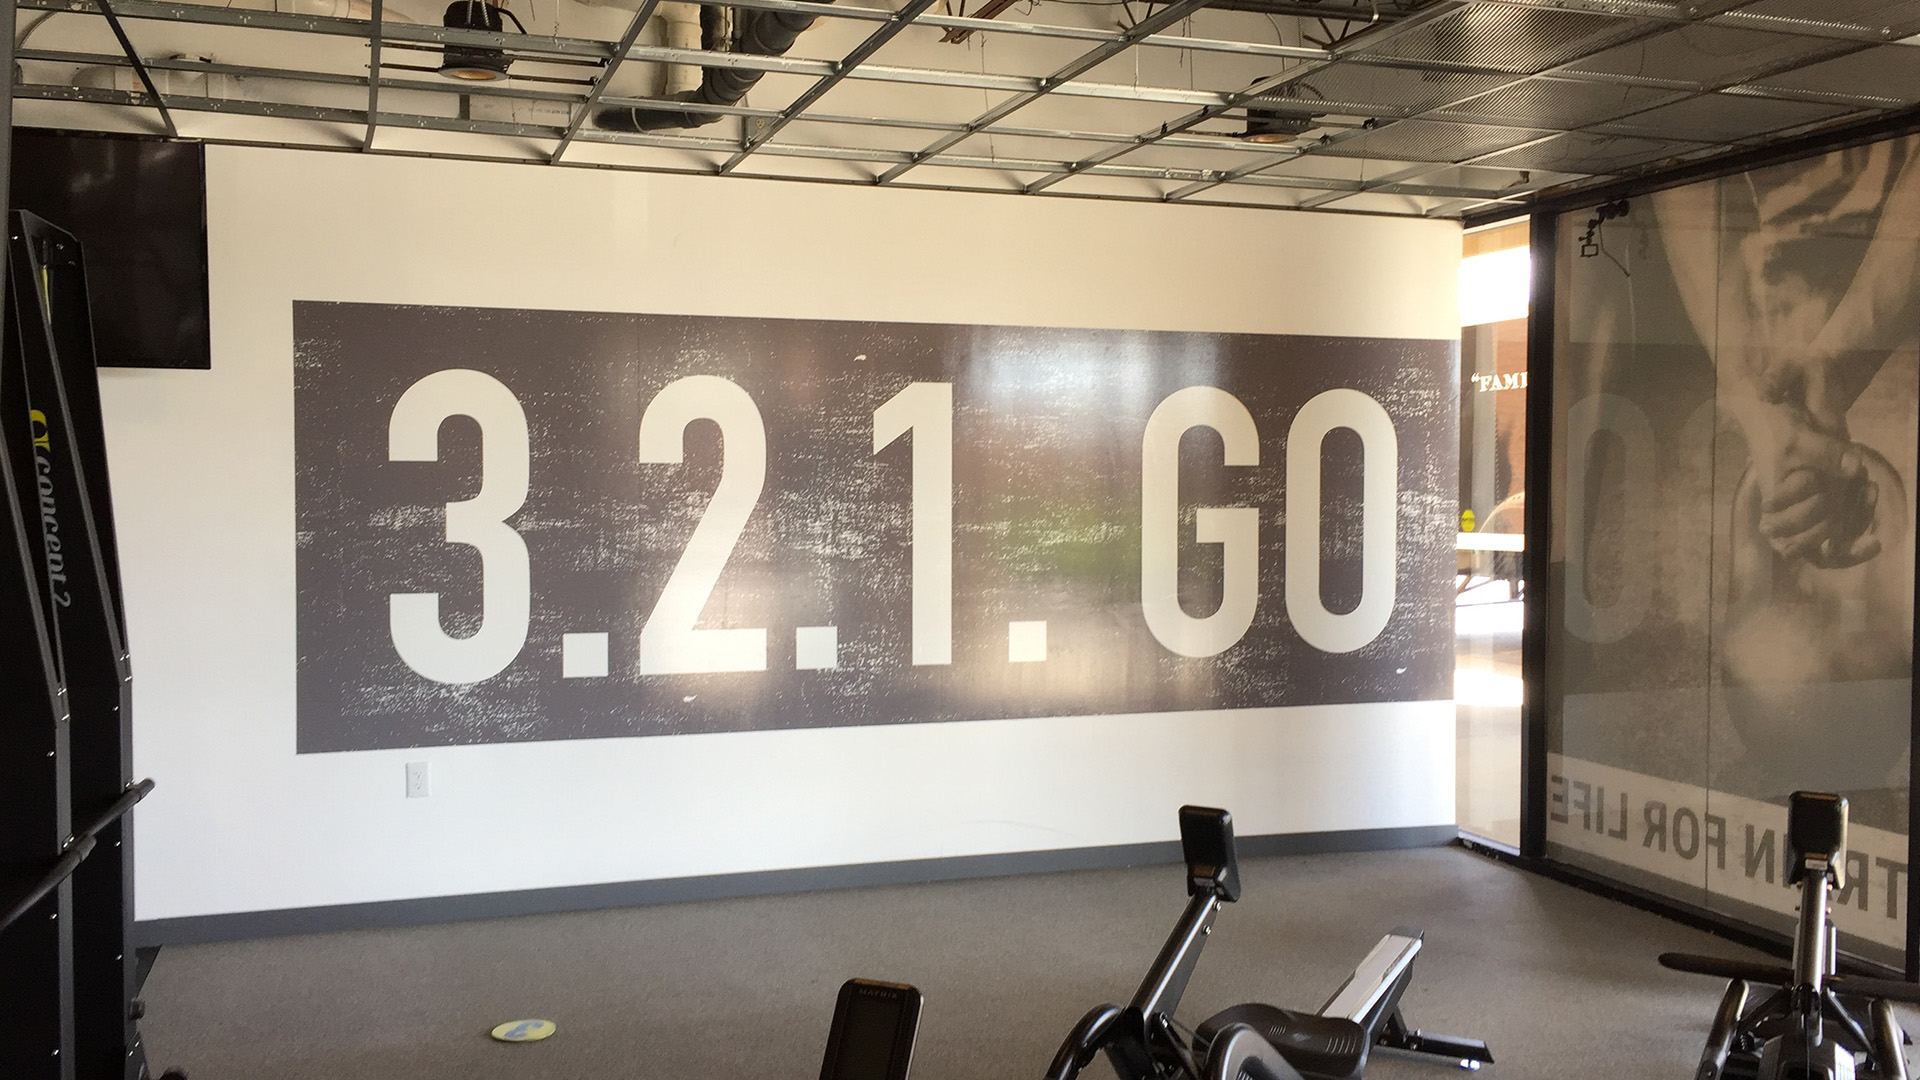 321 Gym wall graphic